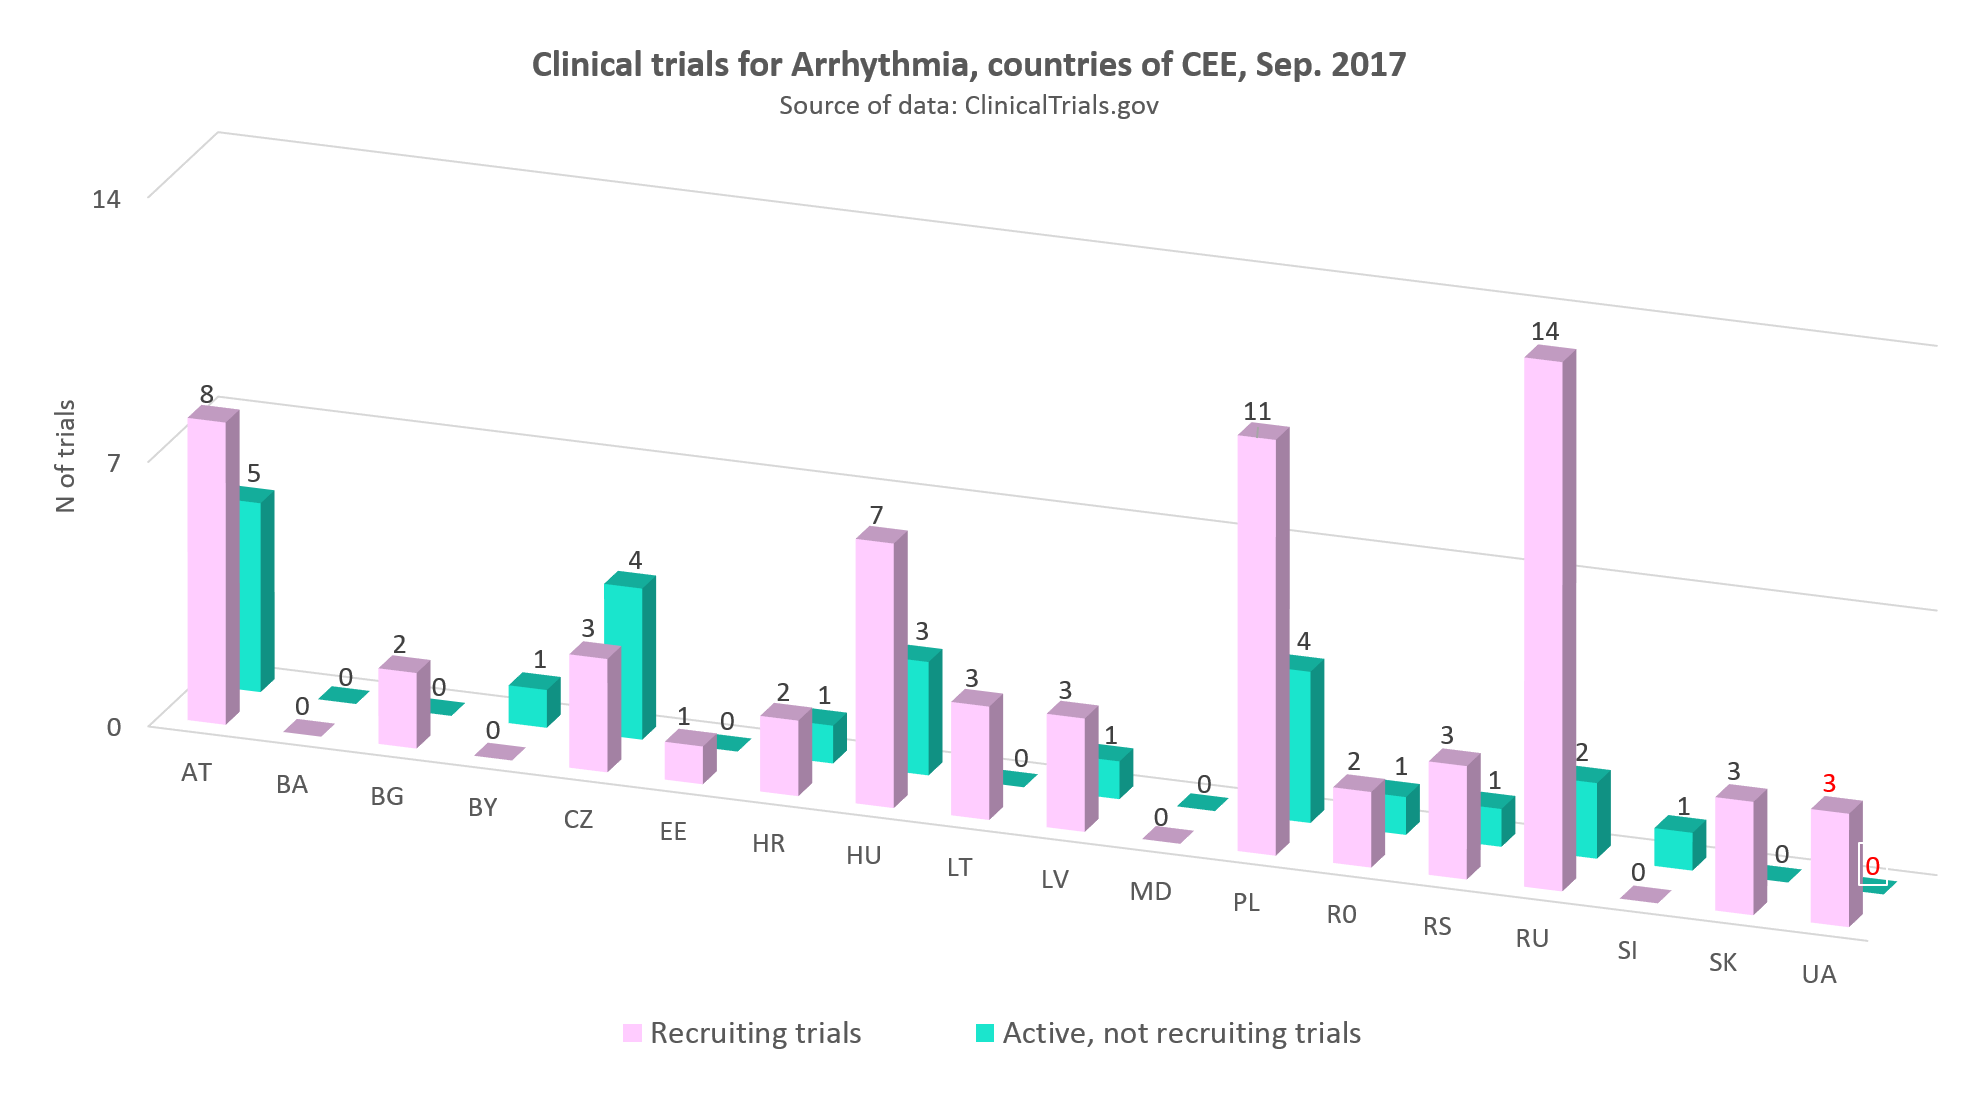 Clinical trials for arrhythmia in the countries of CEE, September 2017